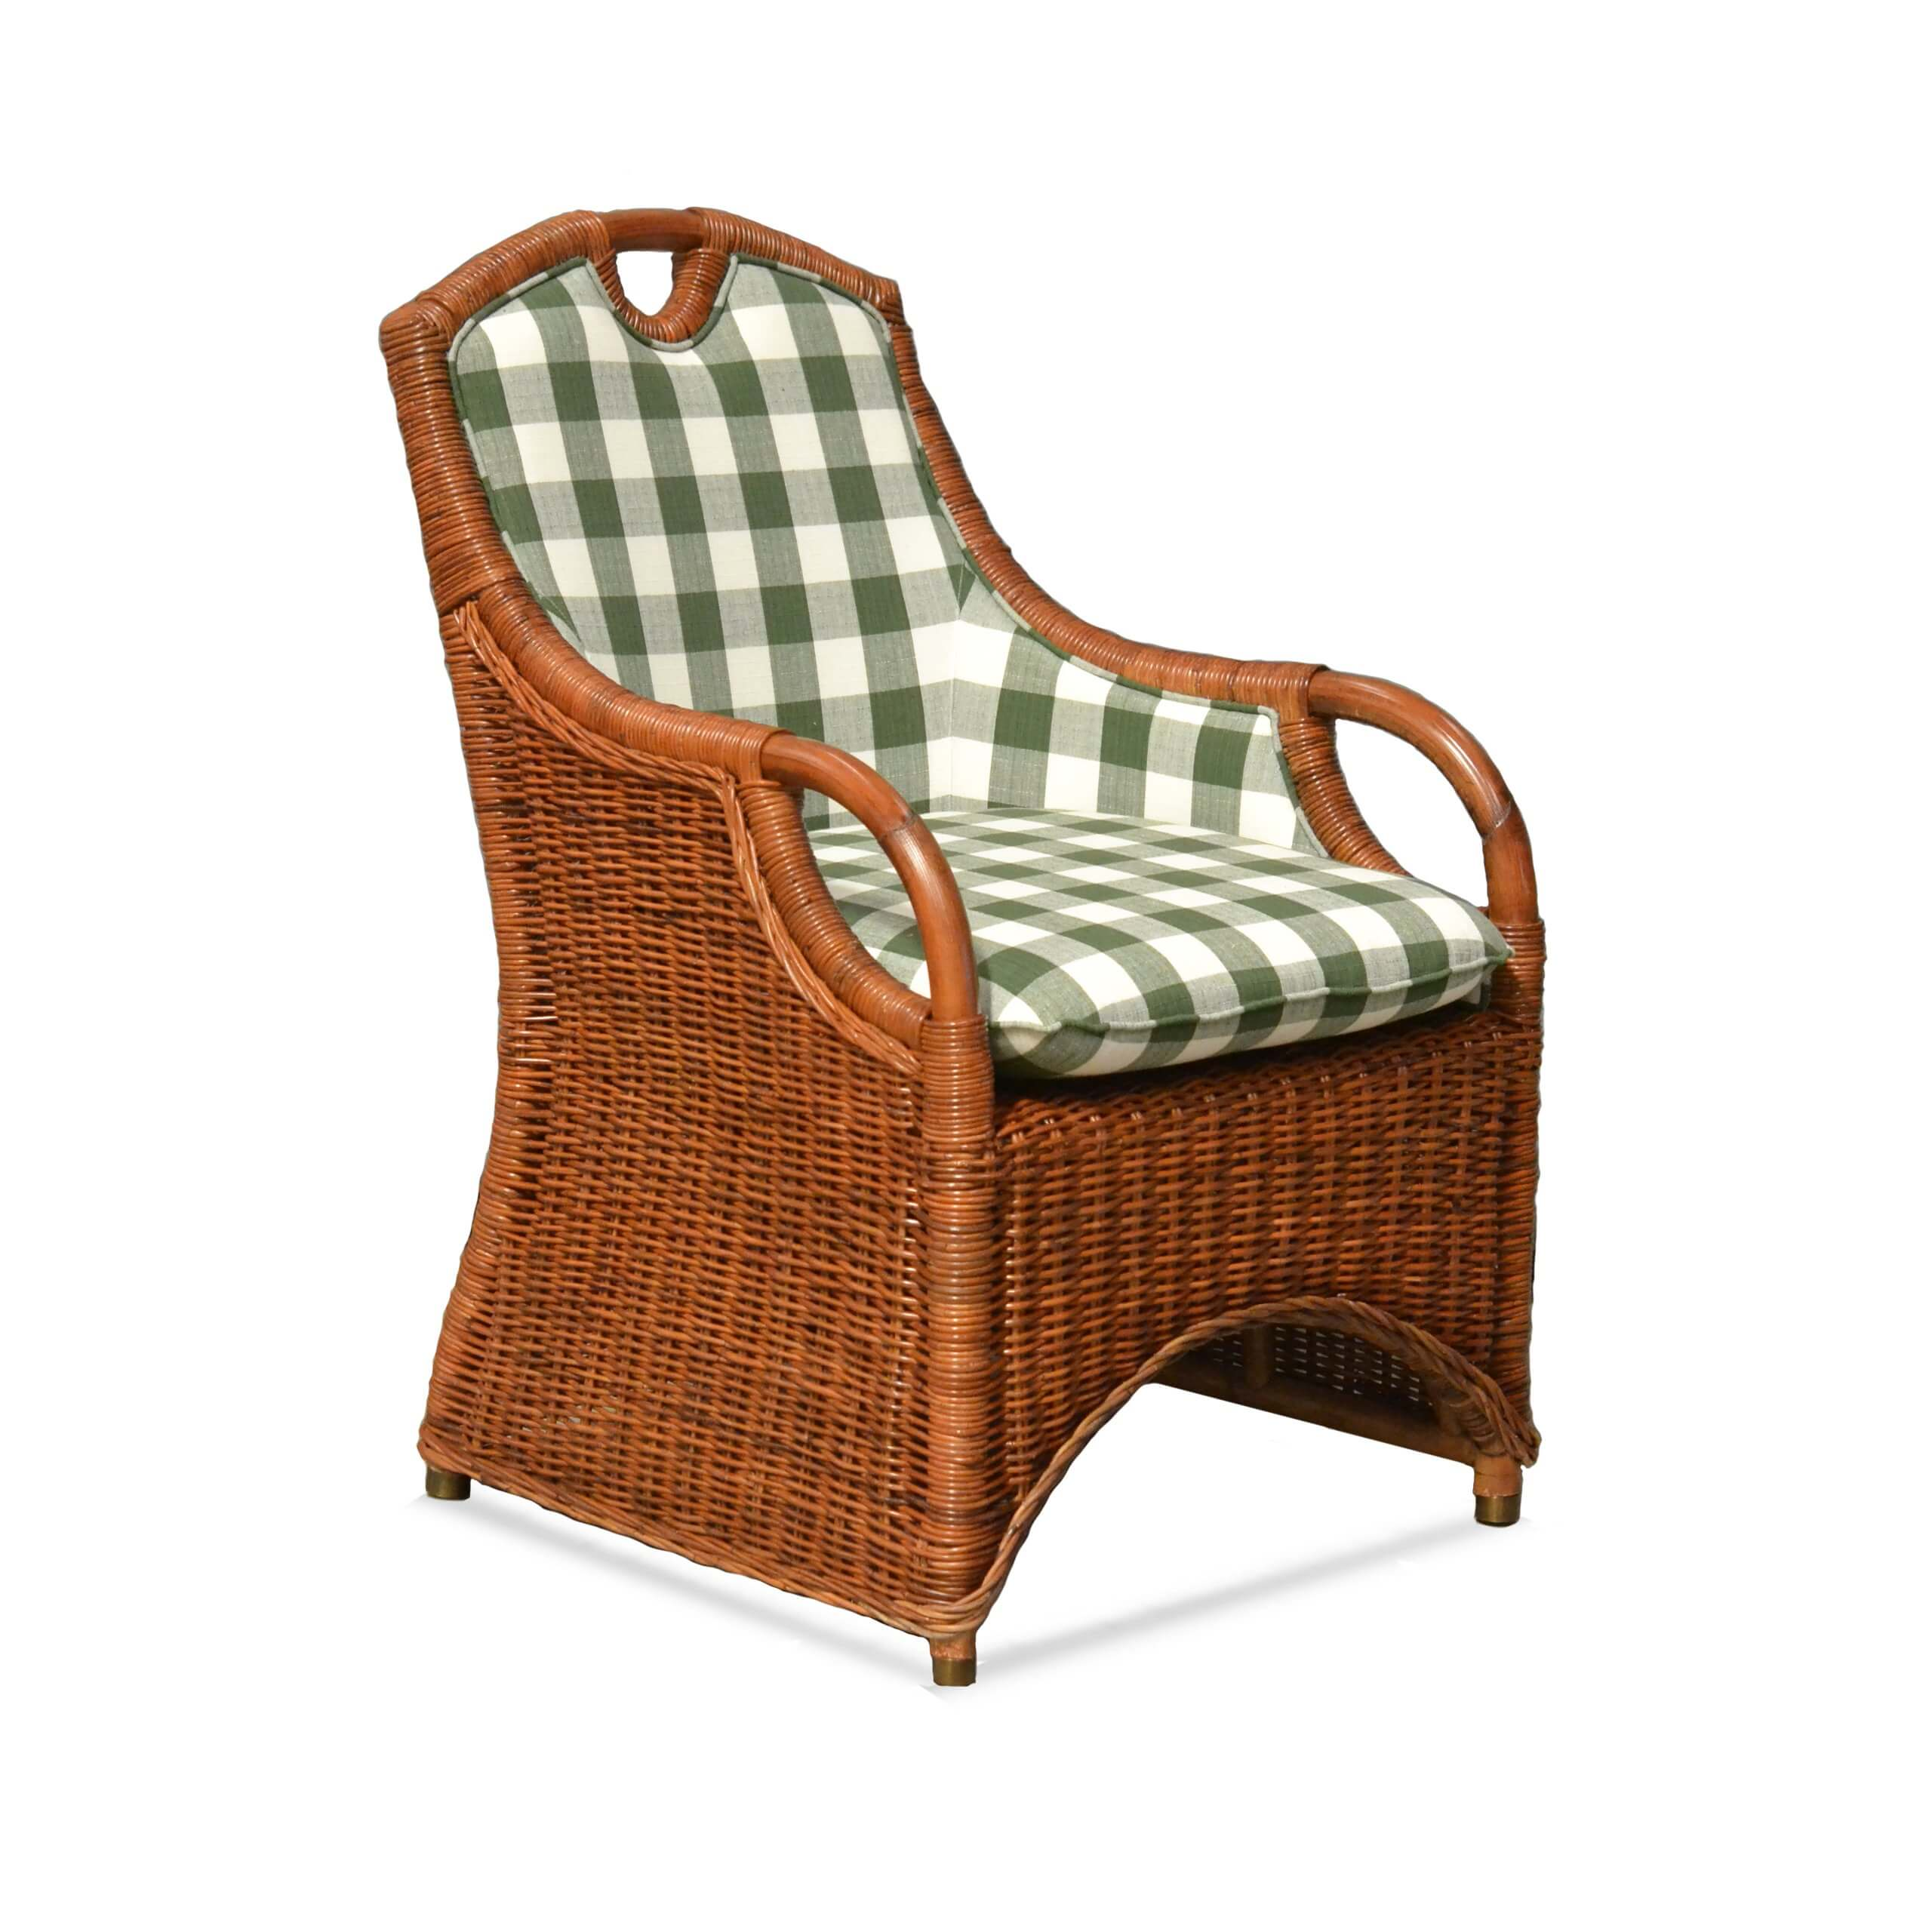 CABANA DINING CHAIR PERS - STUART MEMBERY HOME COLLECTION